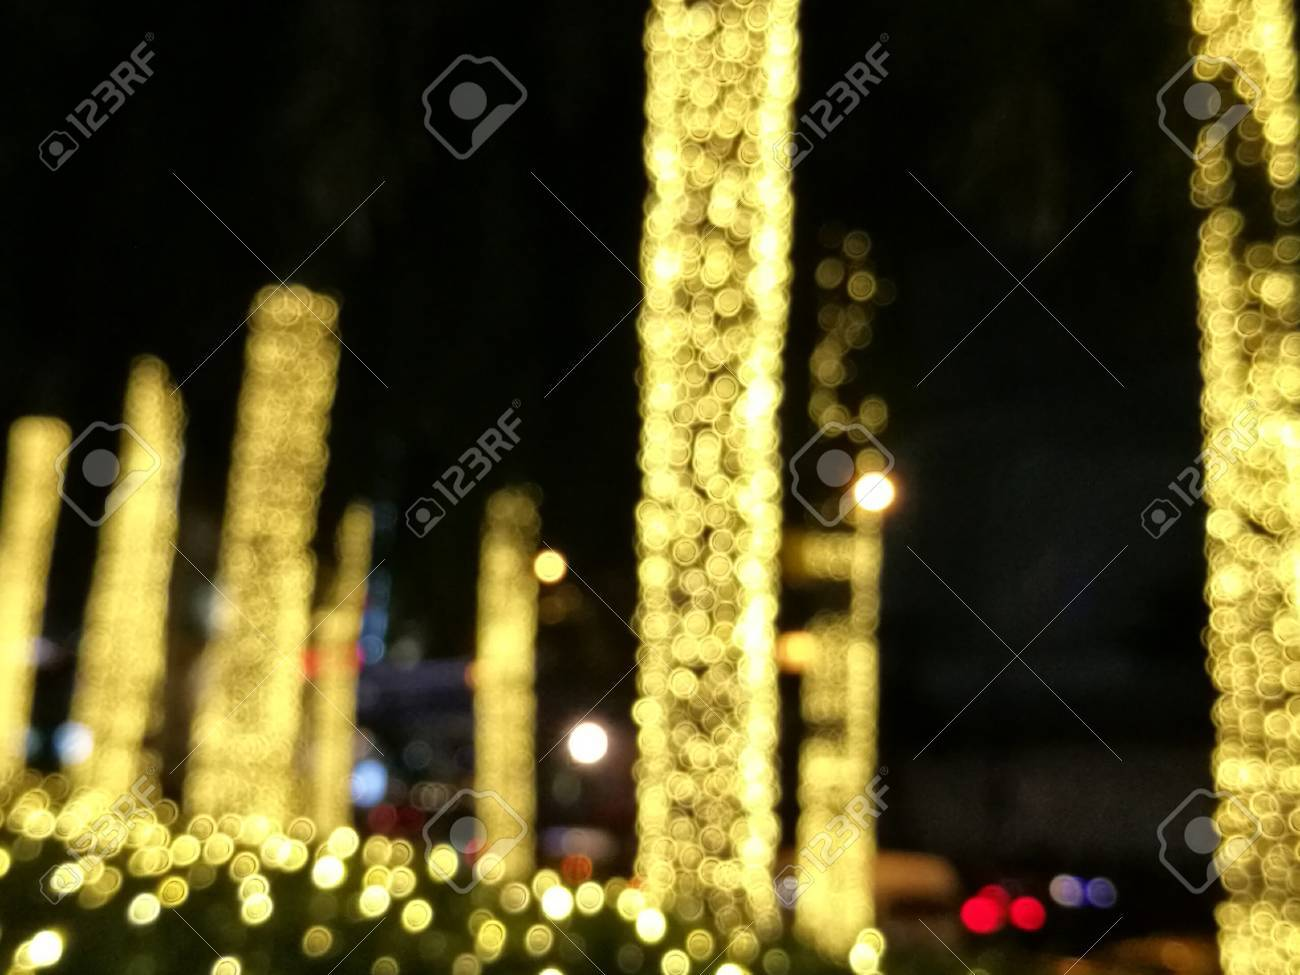 Blur Decorative Outdoor String Lights Bulb Hanging On Tree In The Garden At Night Time